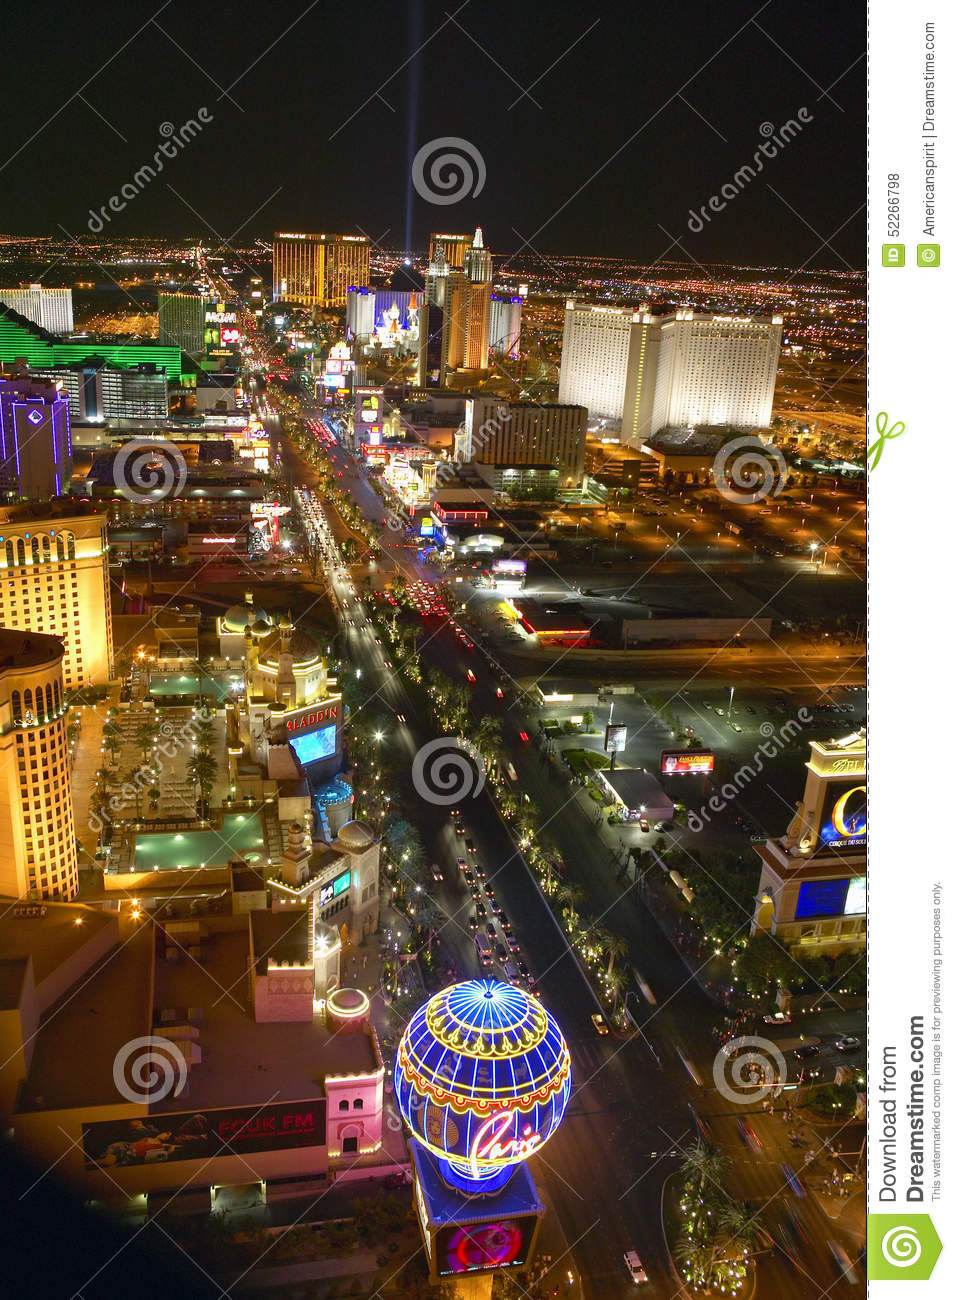 Las Vegas Night View: Aerial View At Night From Eiffel Tower Of Las Vegas Strip